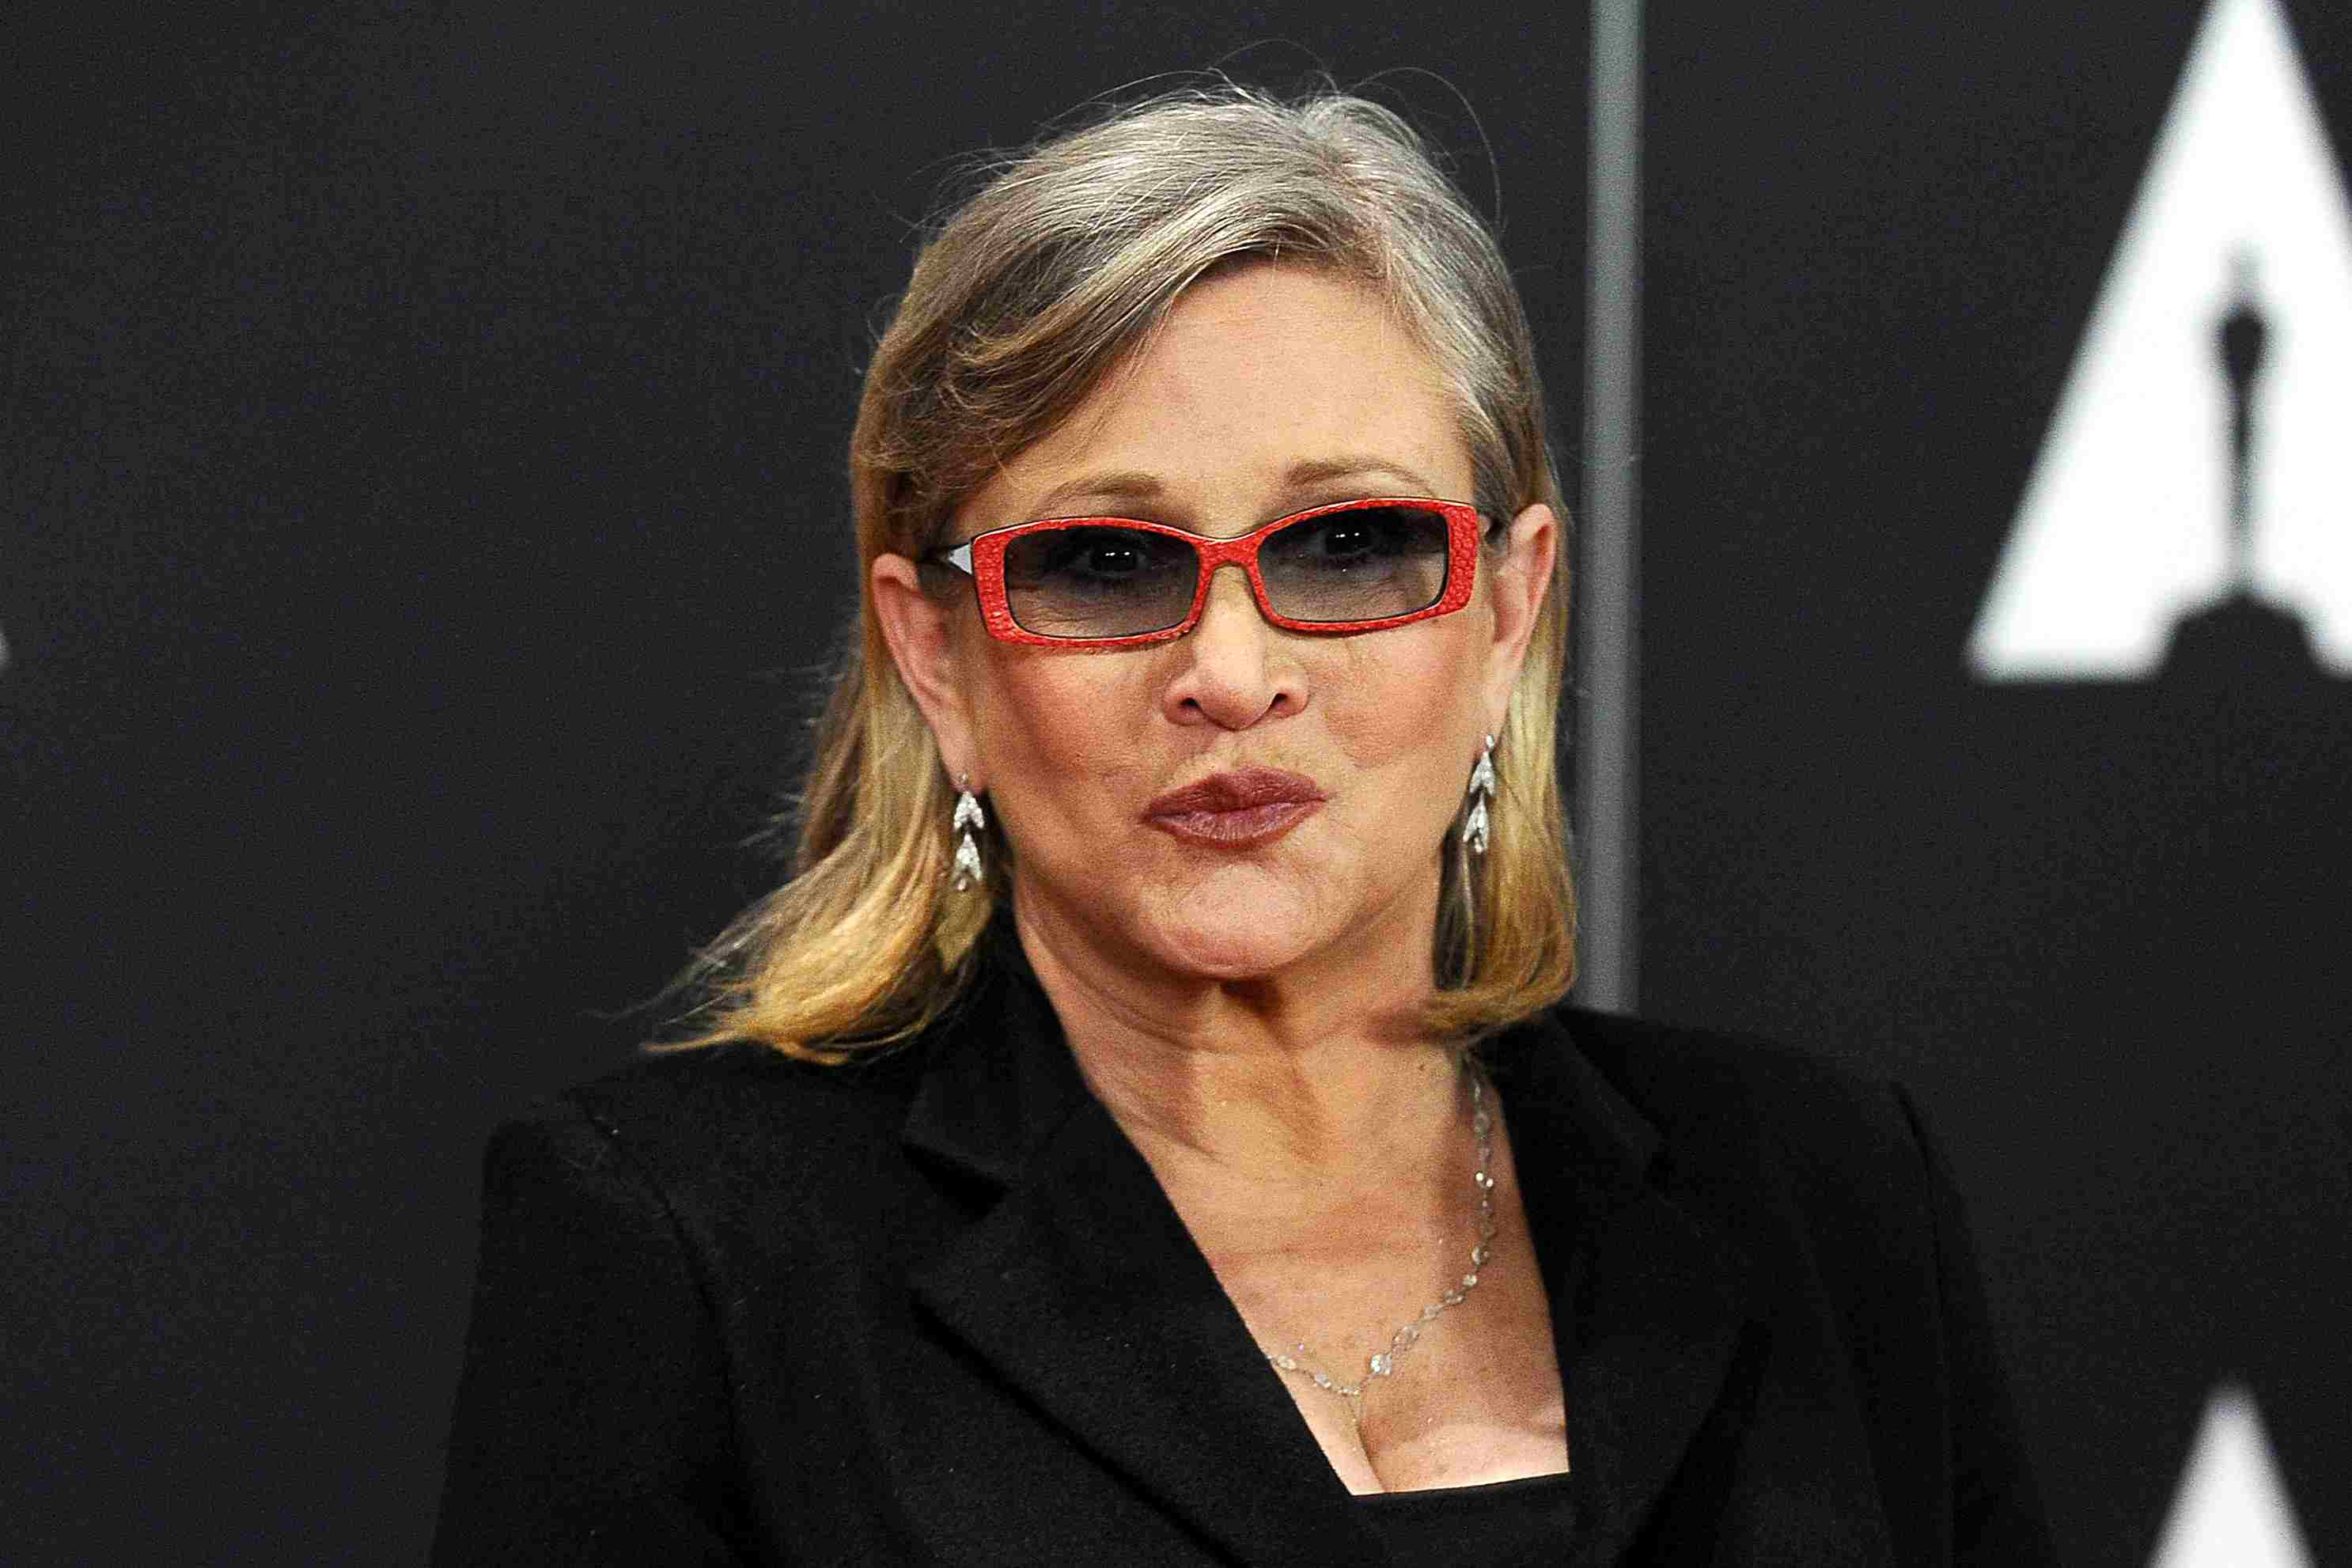 Carrie Fisher at a 2015 red carpet event in Hollywood